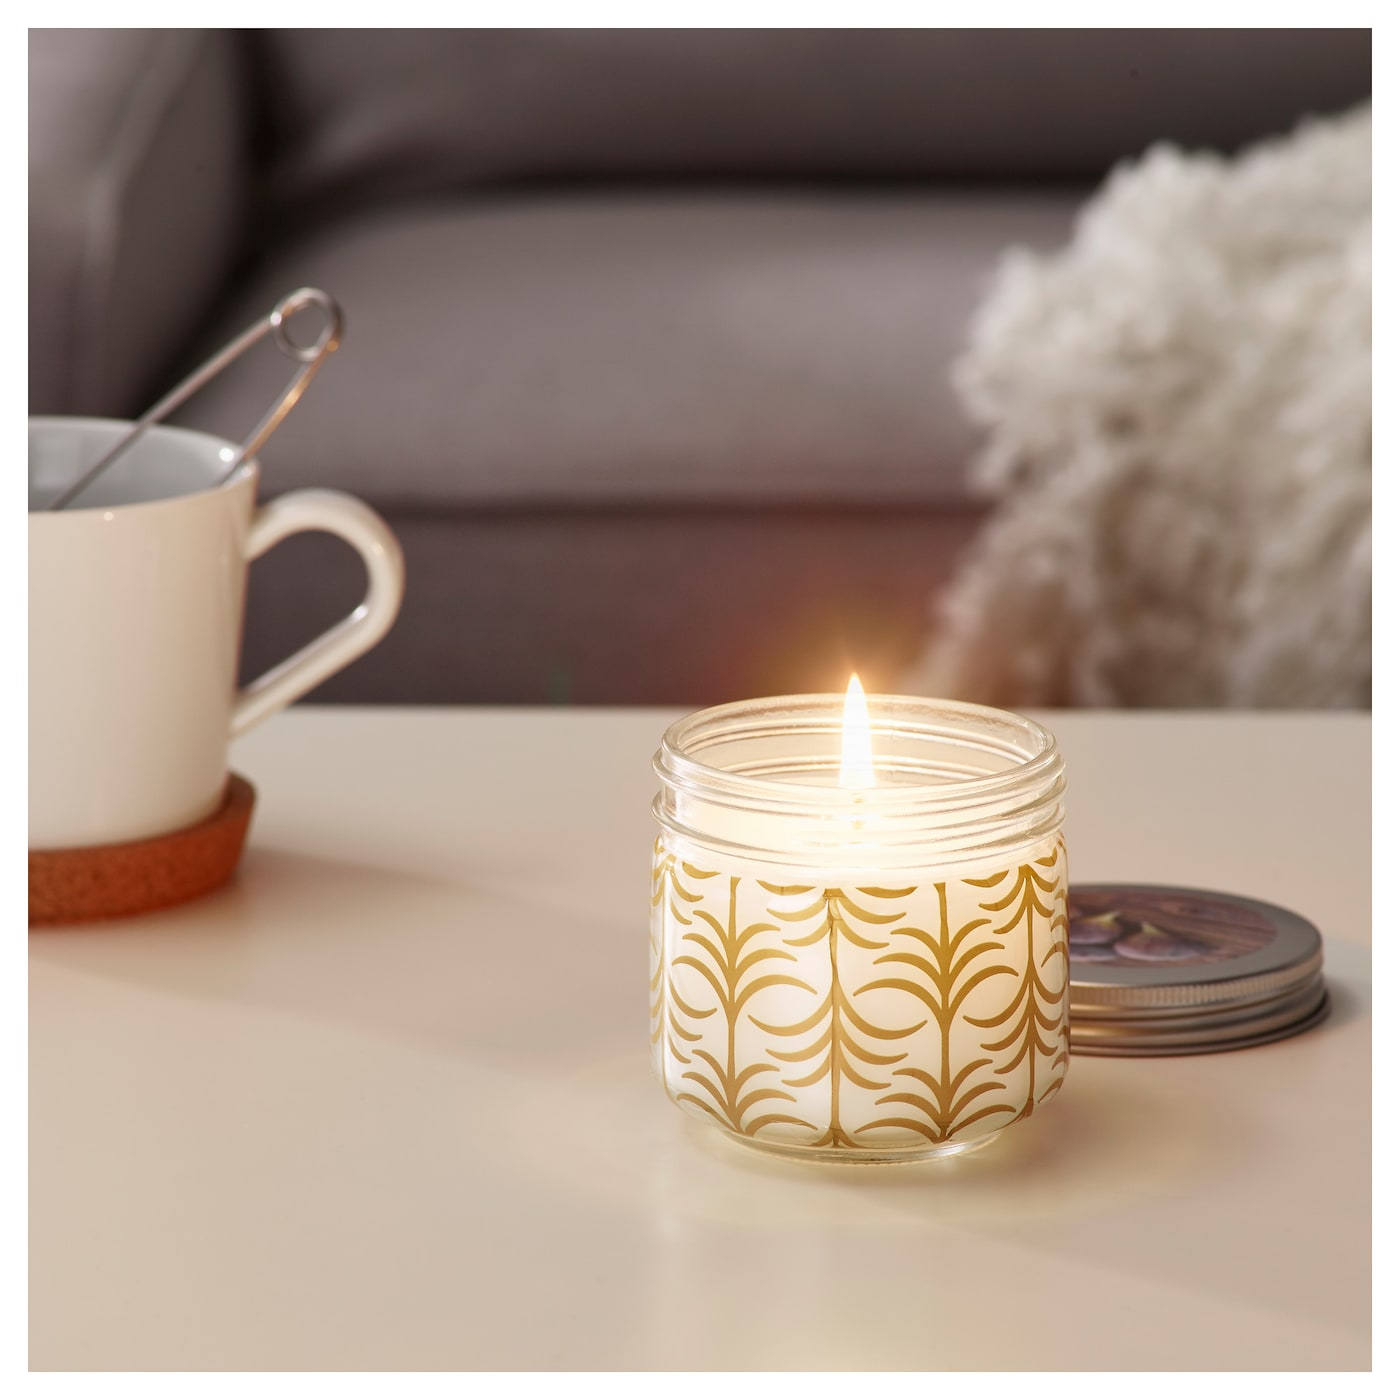 IKEA FÖRLIKA scented candle in glass Scent of fig with notes of coffee, cedar and amber.